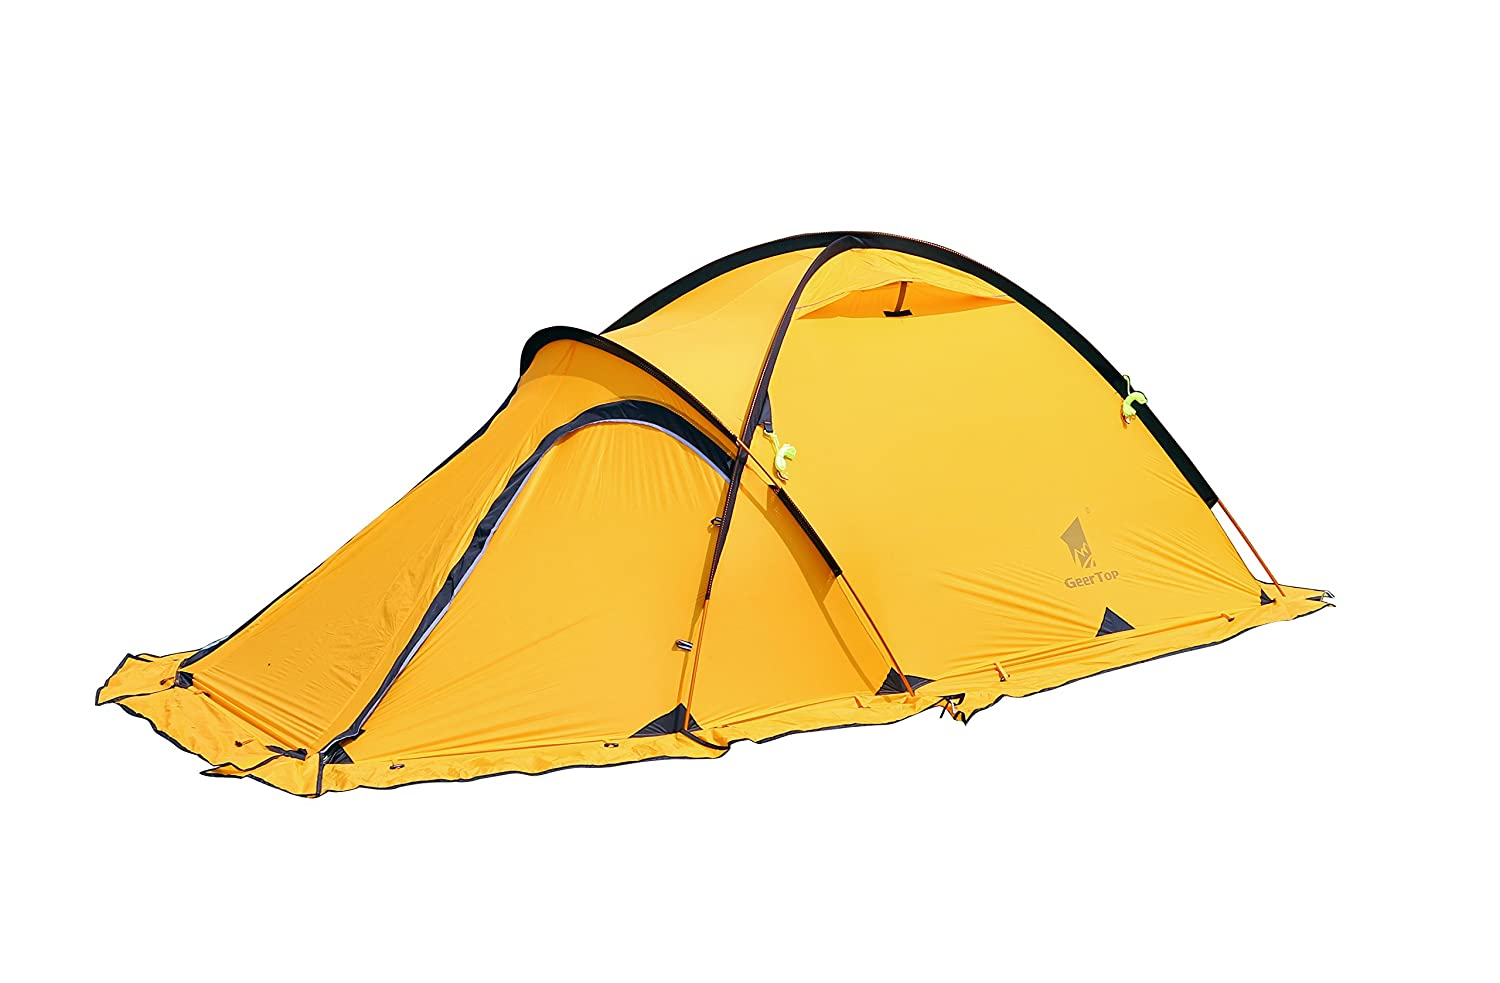 Amazon.com  GEERTOP® 4-season 2-person 20D Lightweight Backpacking Alpine Tent For C&ing Hiking Climbing Travel - With A Living Room  Sports u0026 ...  sc 1 st  Amazon.com & Amazon.com : GEERTOP® 4-season 2-person 20D Lightweight ...